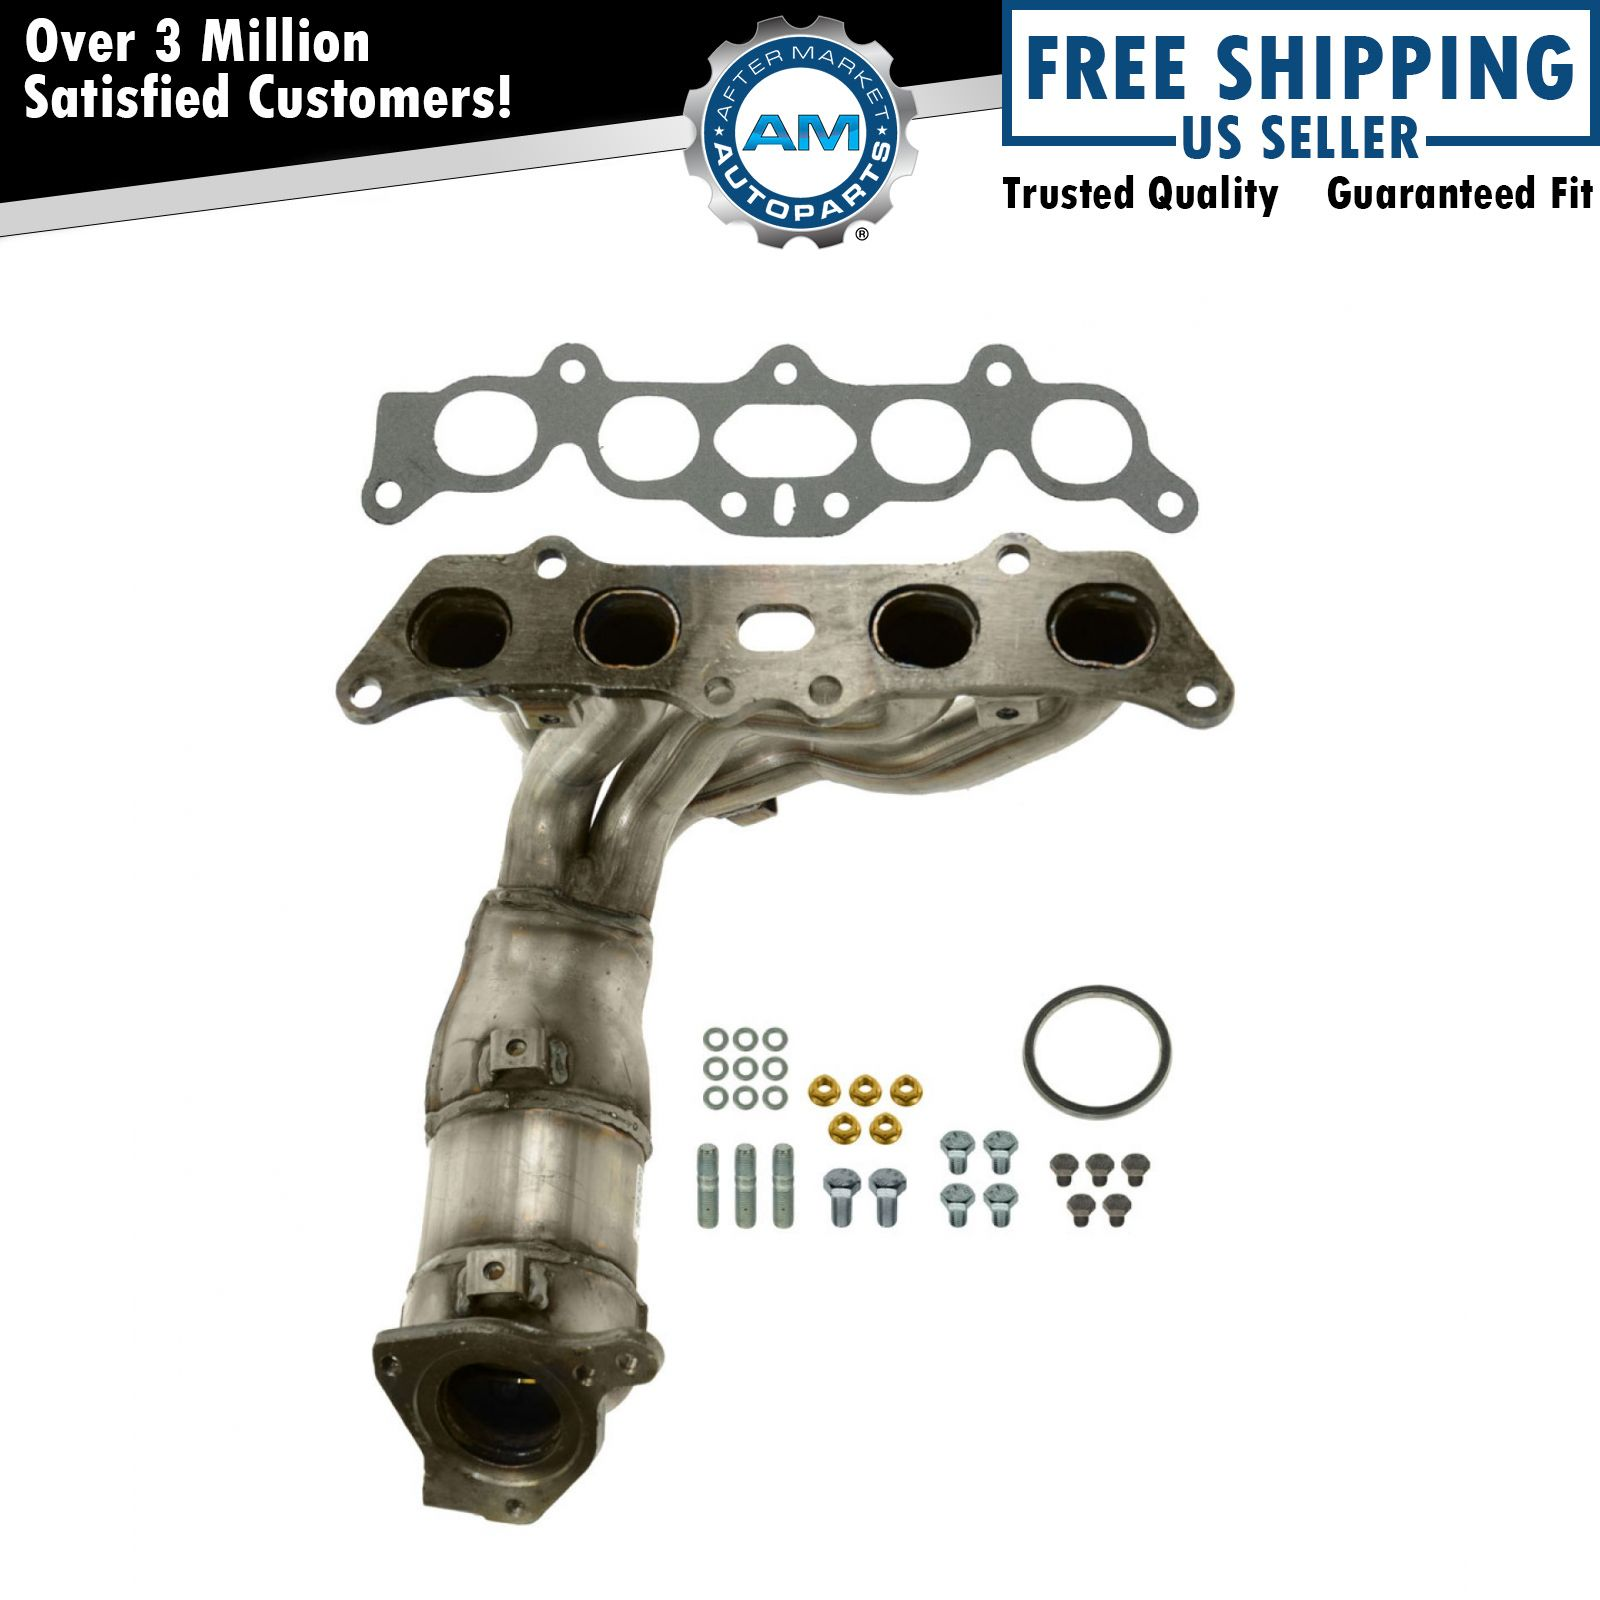 Toyota Solara Exhaust Manifold Engine System Intake: Exhaust Manifold W/ Catalytic Converter & Gasket Kit NEW